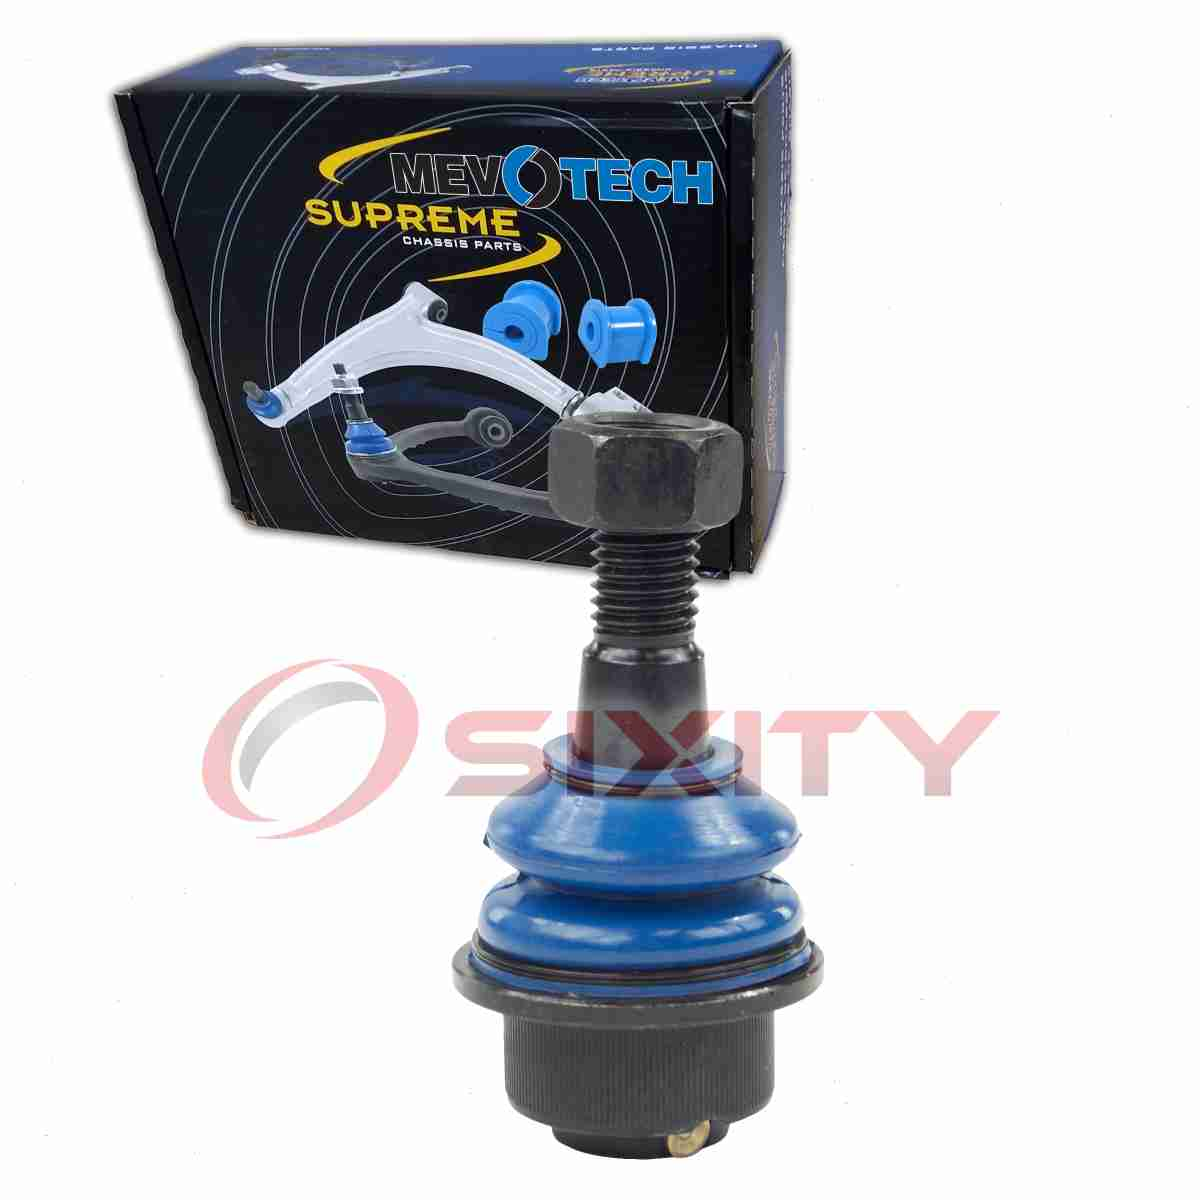 Mevotech Front Lower Suspension Ball Joint for 2005-2015 Toyota Tacoma rh